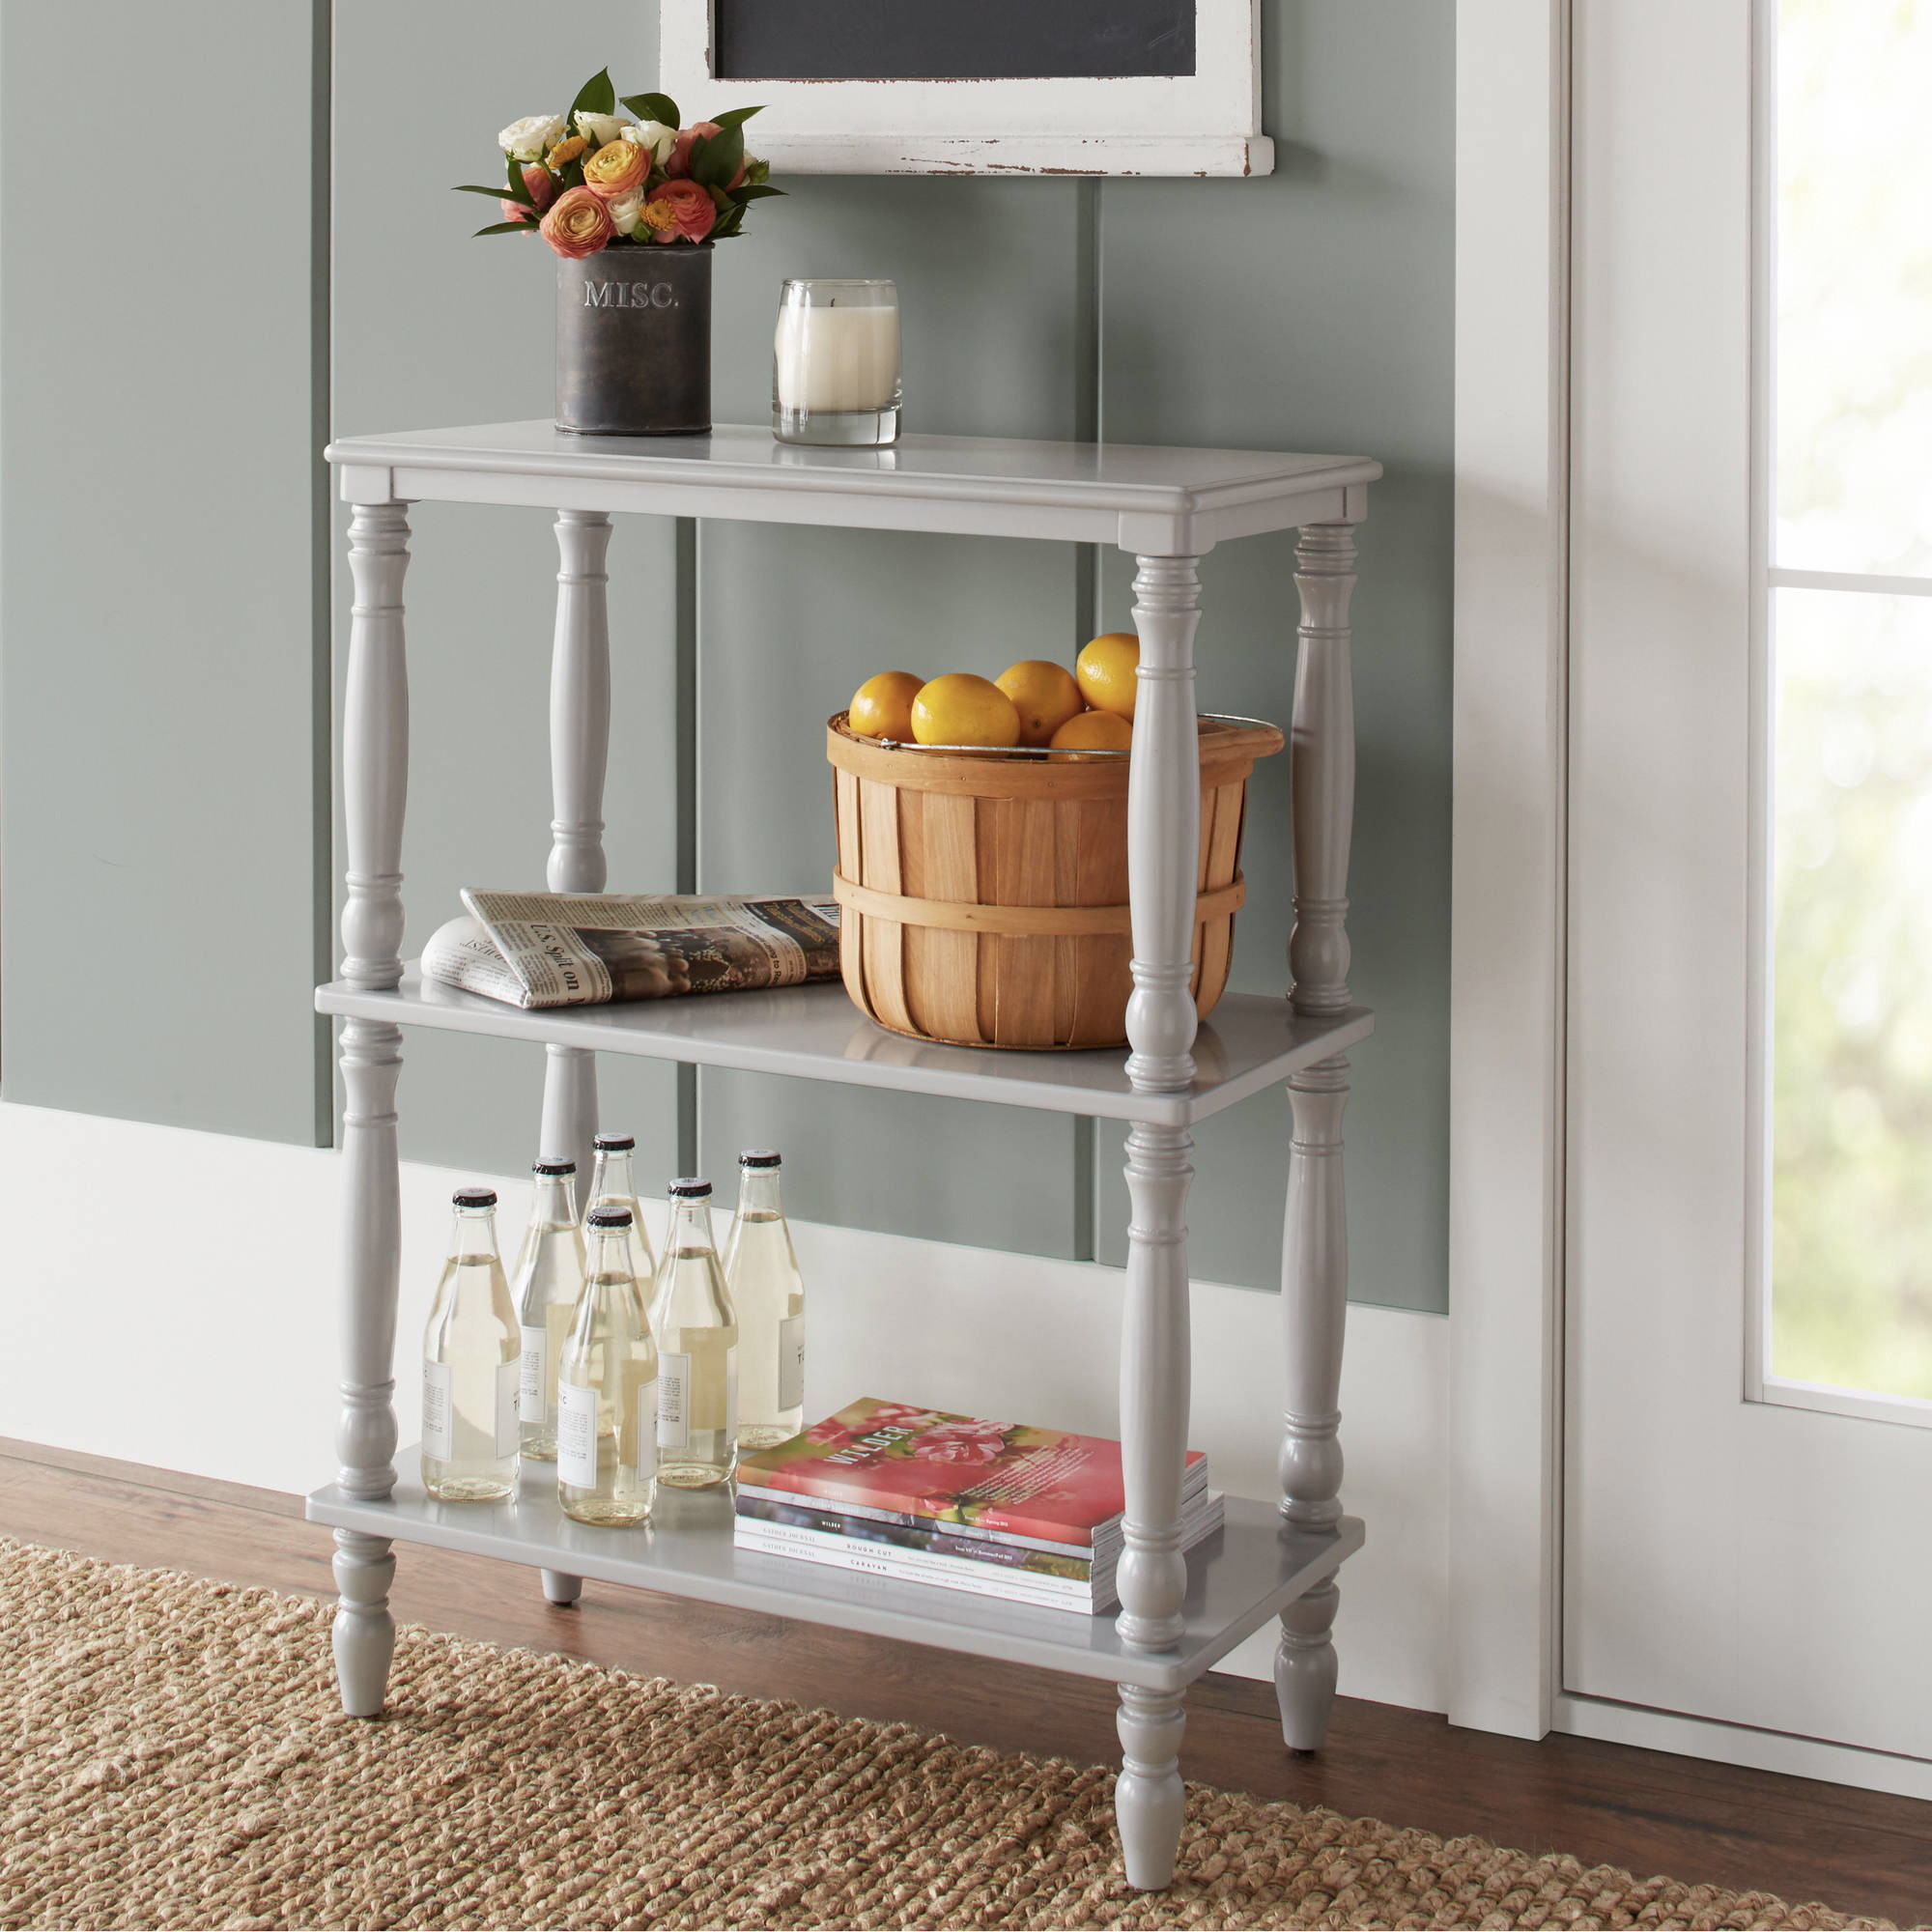 Coupons For Walmart Furniture: Up To 80% Off Furniture Clearance At Walmart: $29 Side